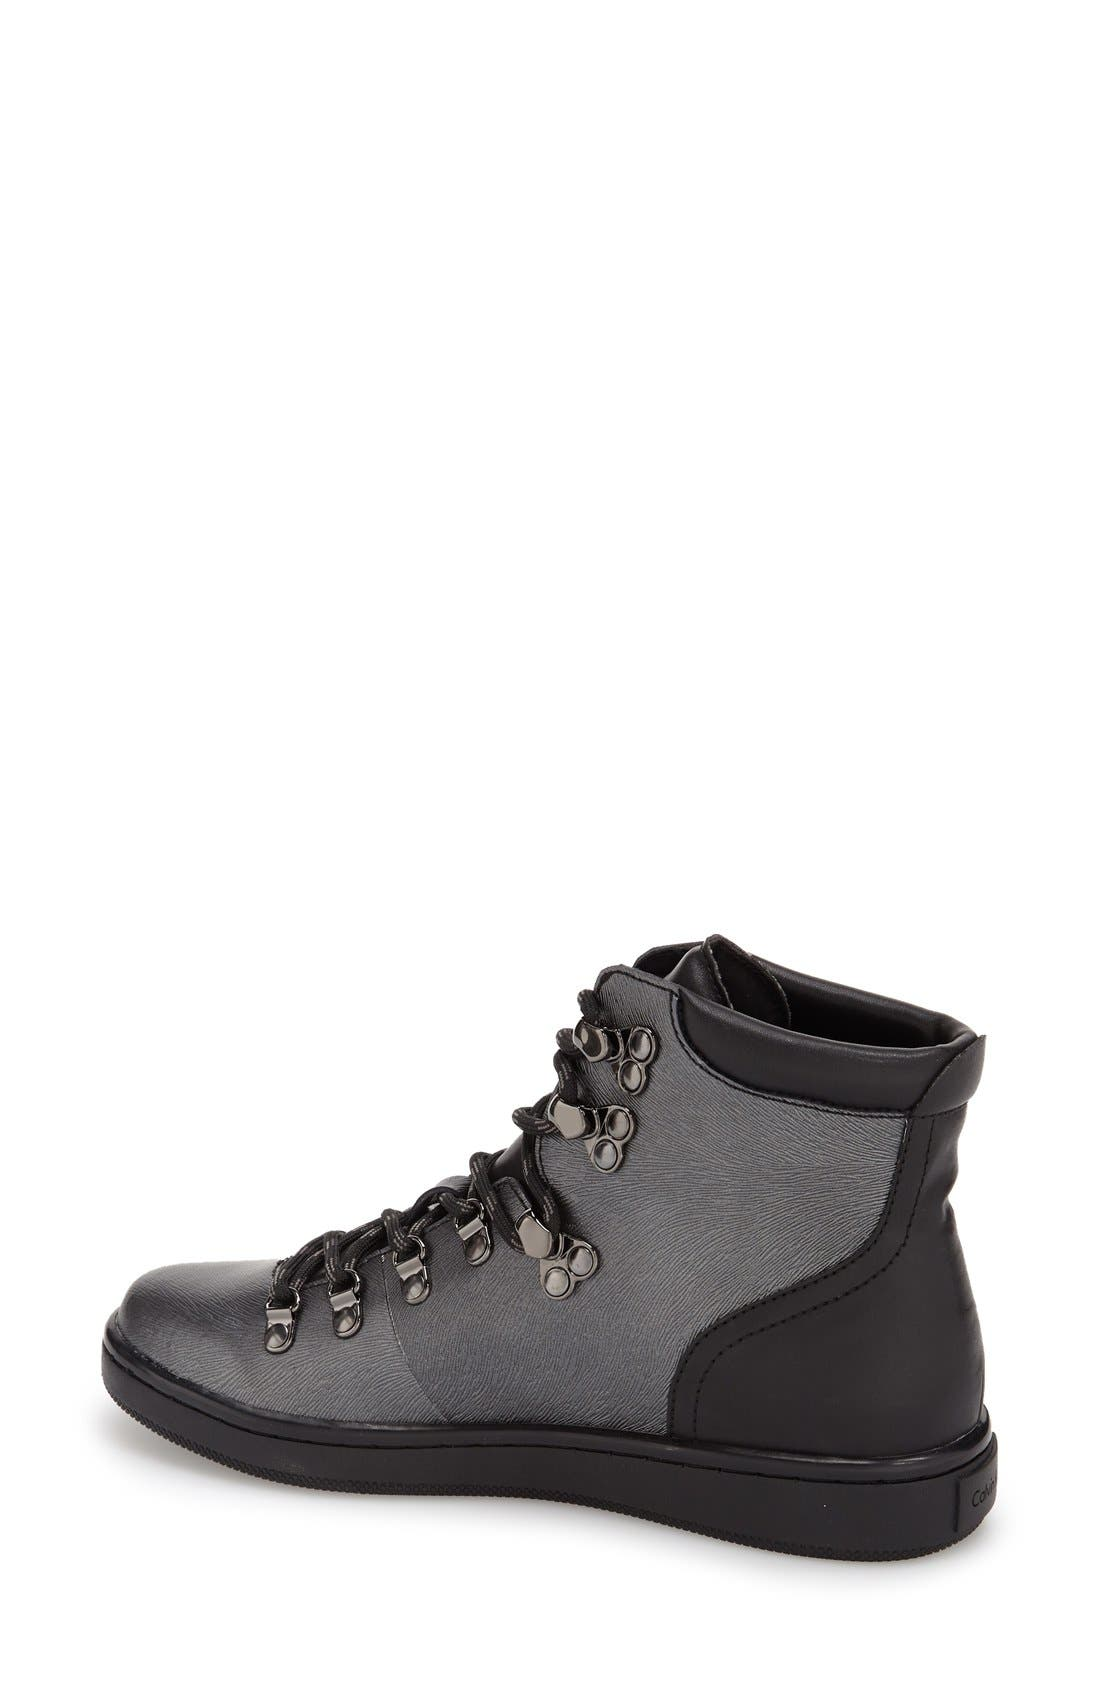 Alternate Image 2  - Calvin Klein 'Dita' Sneaker Boot (Women)